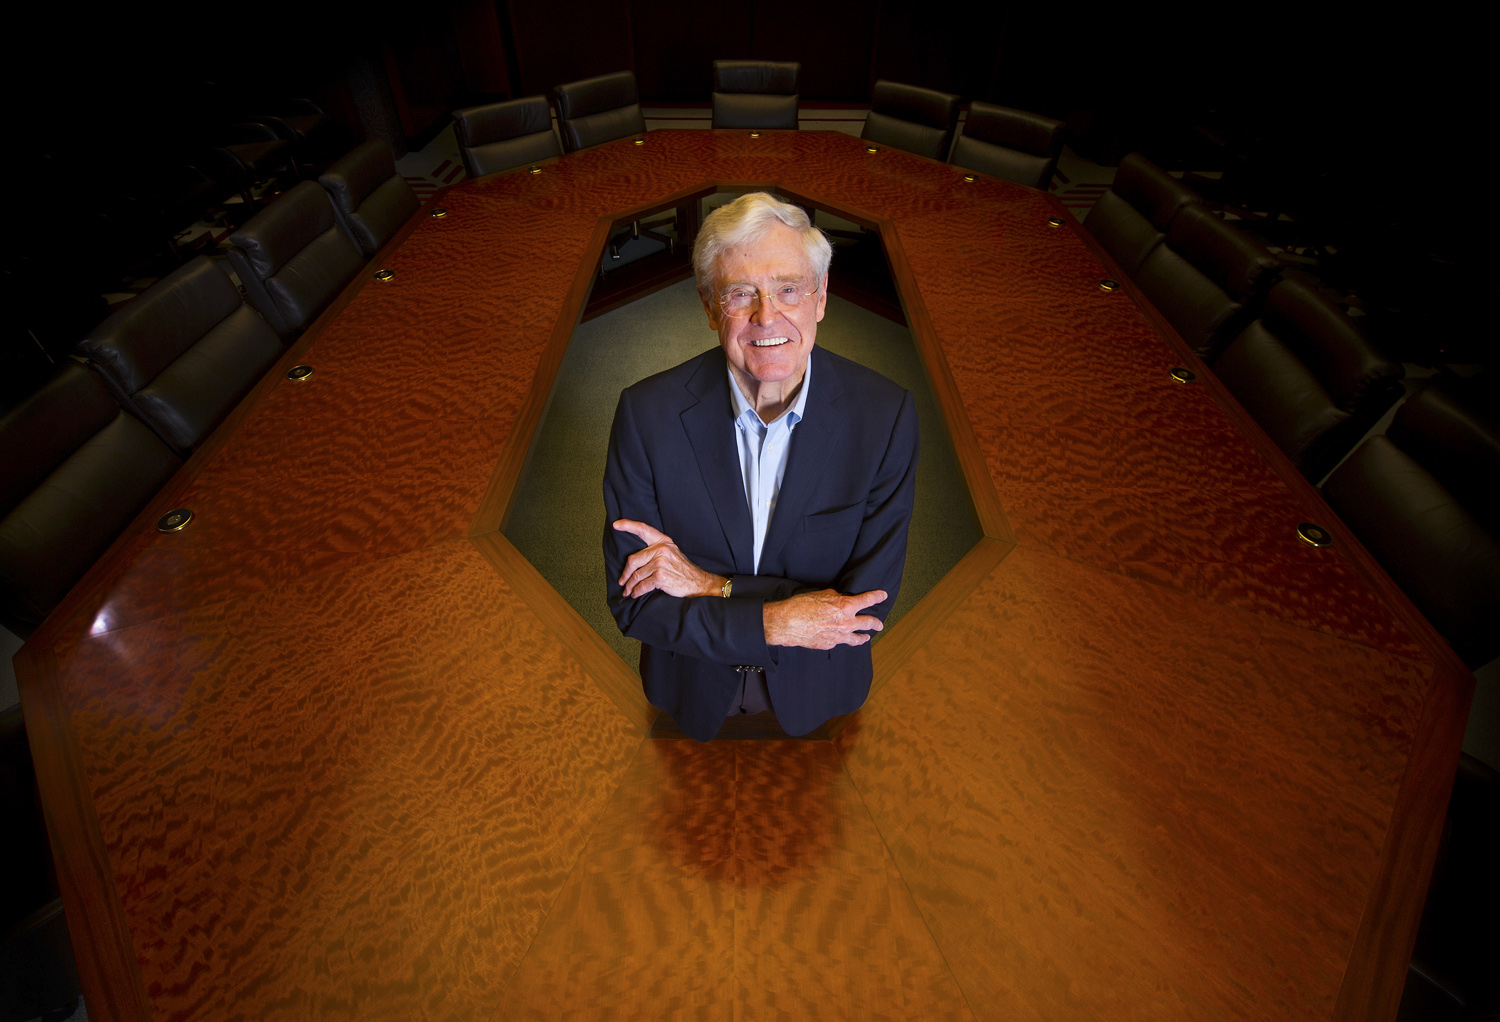 4/21/15 11:01:58 AM -- Wichita, KS, U.S.A  -- Charles Koch, chairman and CEO of Koch Industries, Inc., the second-largest private company in America. He and his brother, David Koch, are well-known contributors to conservative and libertarian political causes. Photographed in his boardroom in Wichita, Kansas